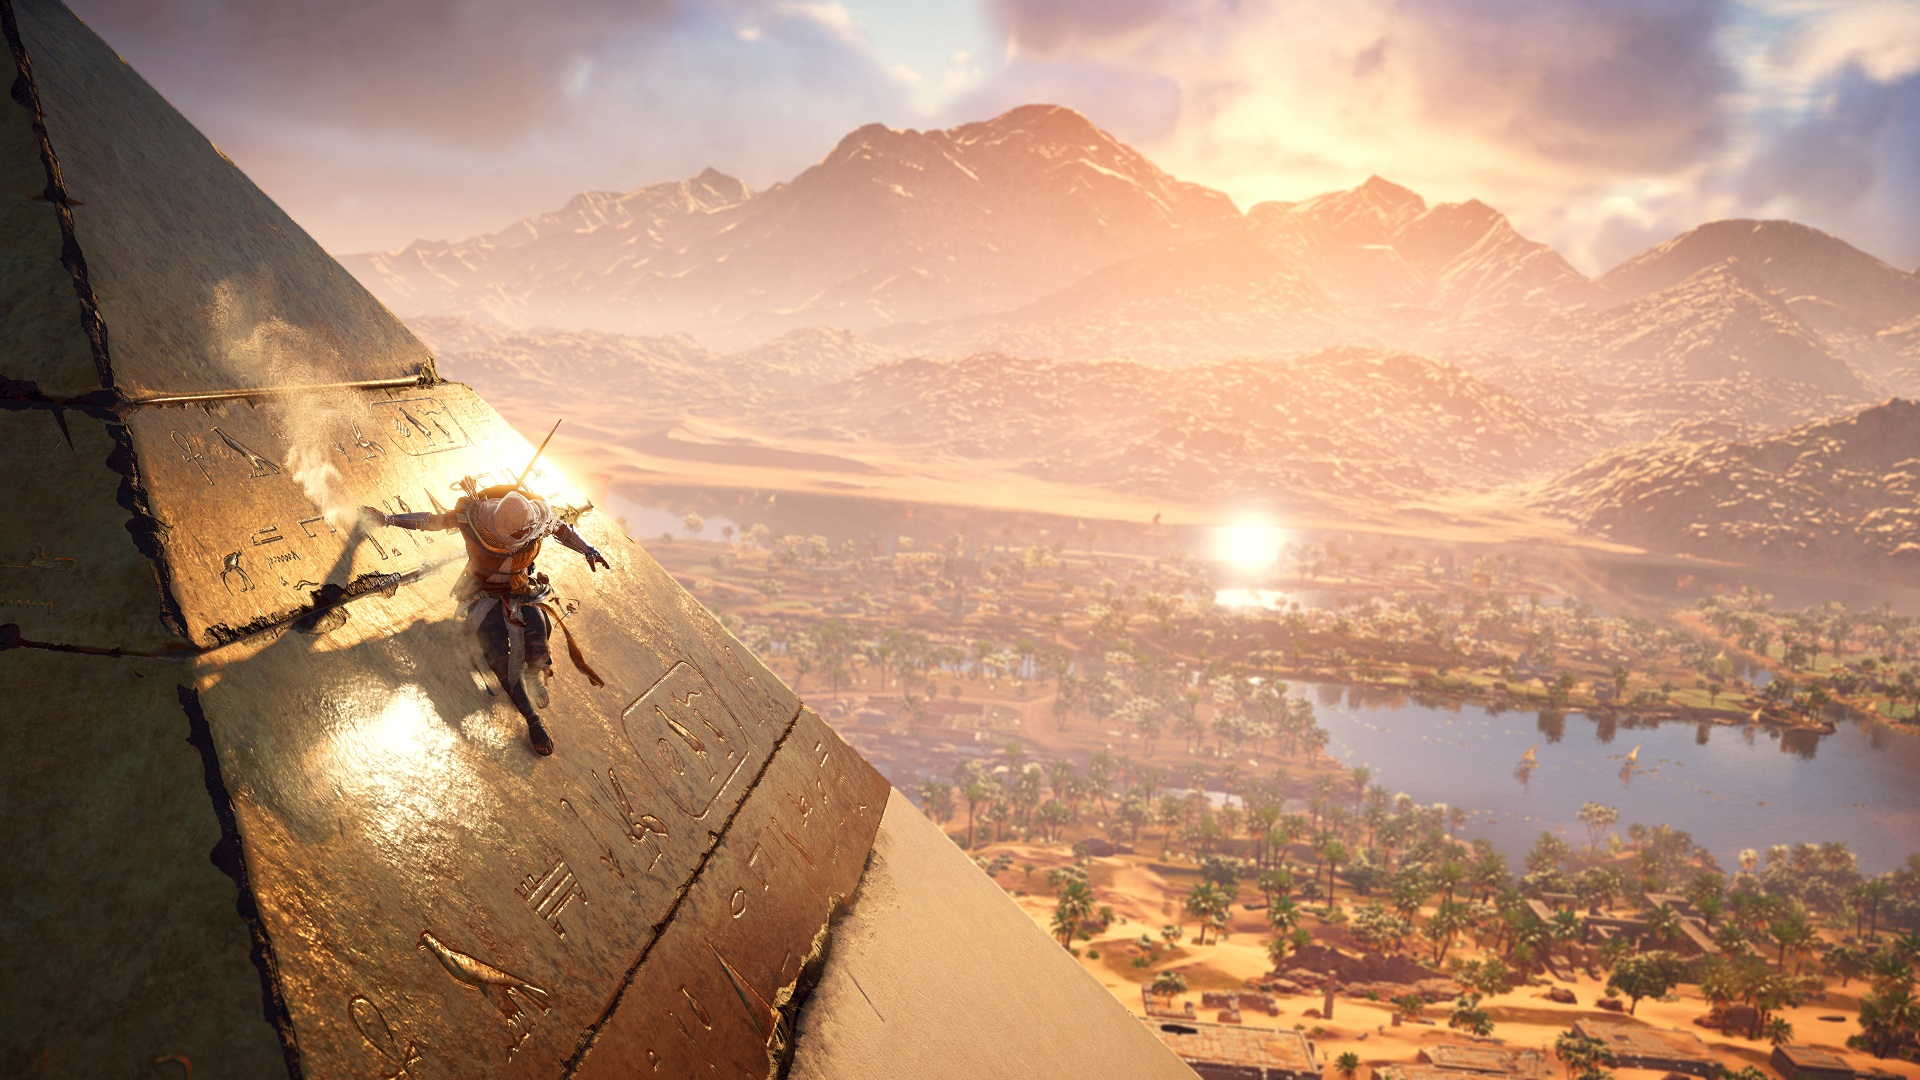 Ubisoft E3 lineup includes Far Cry 5, Assassin's Creed, new titles